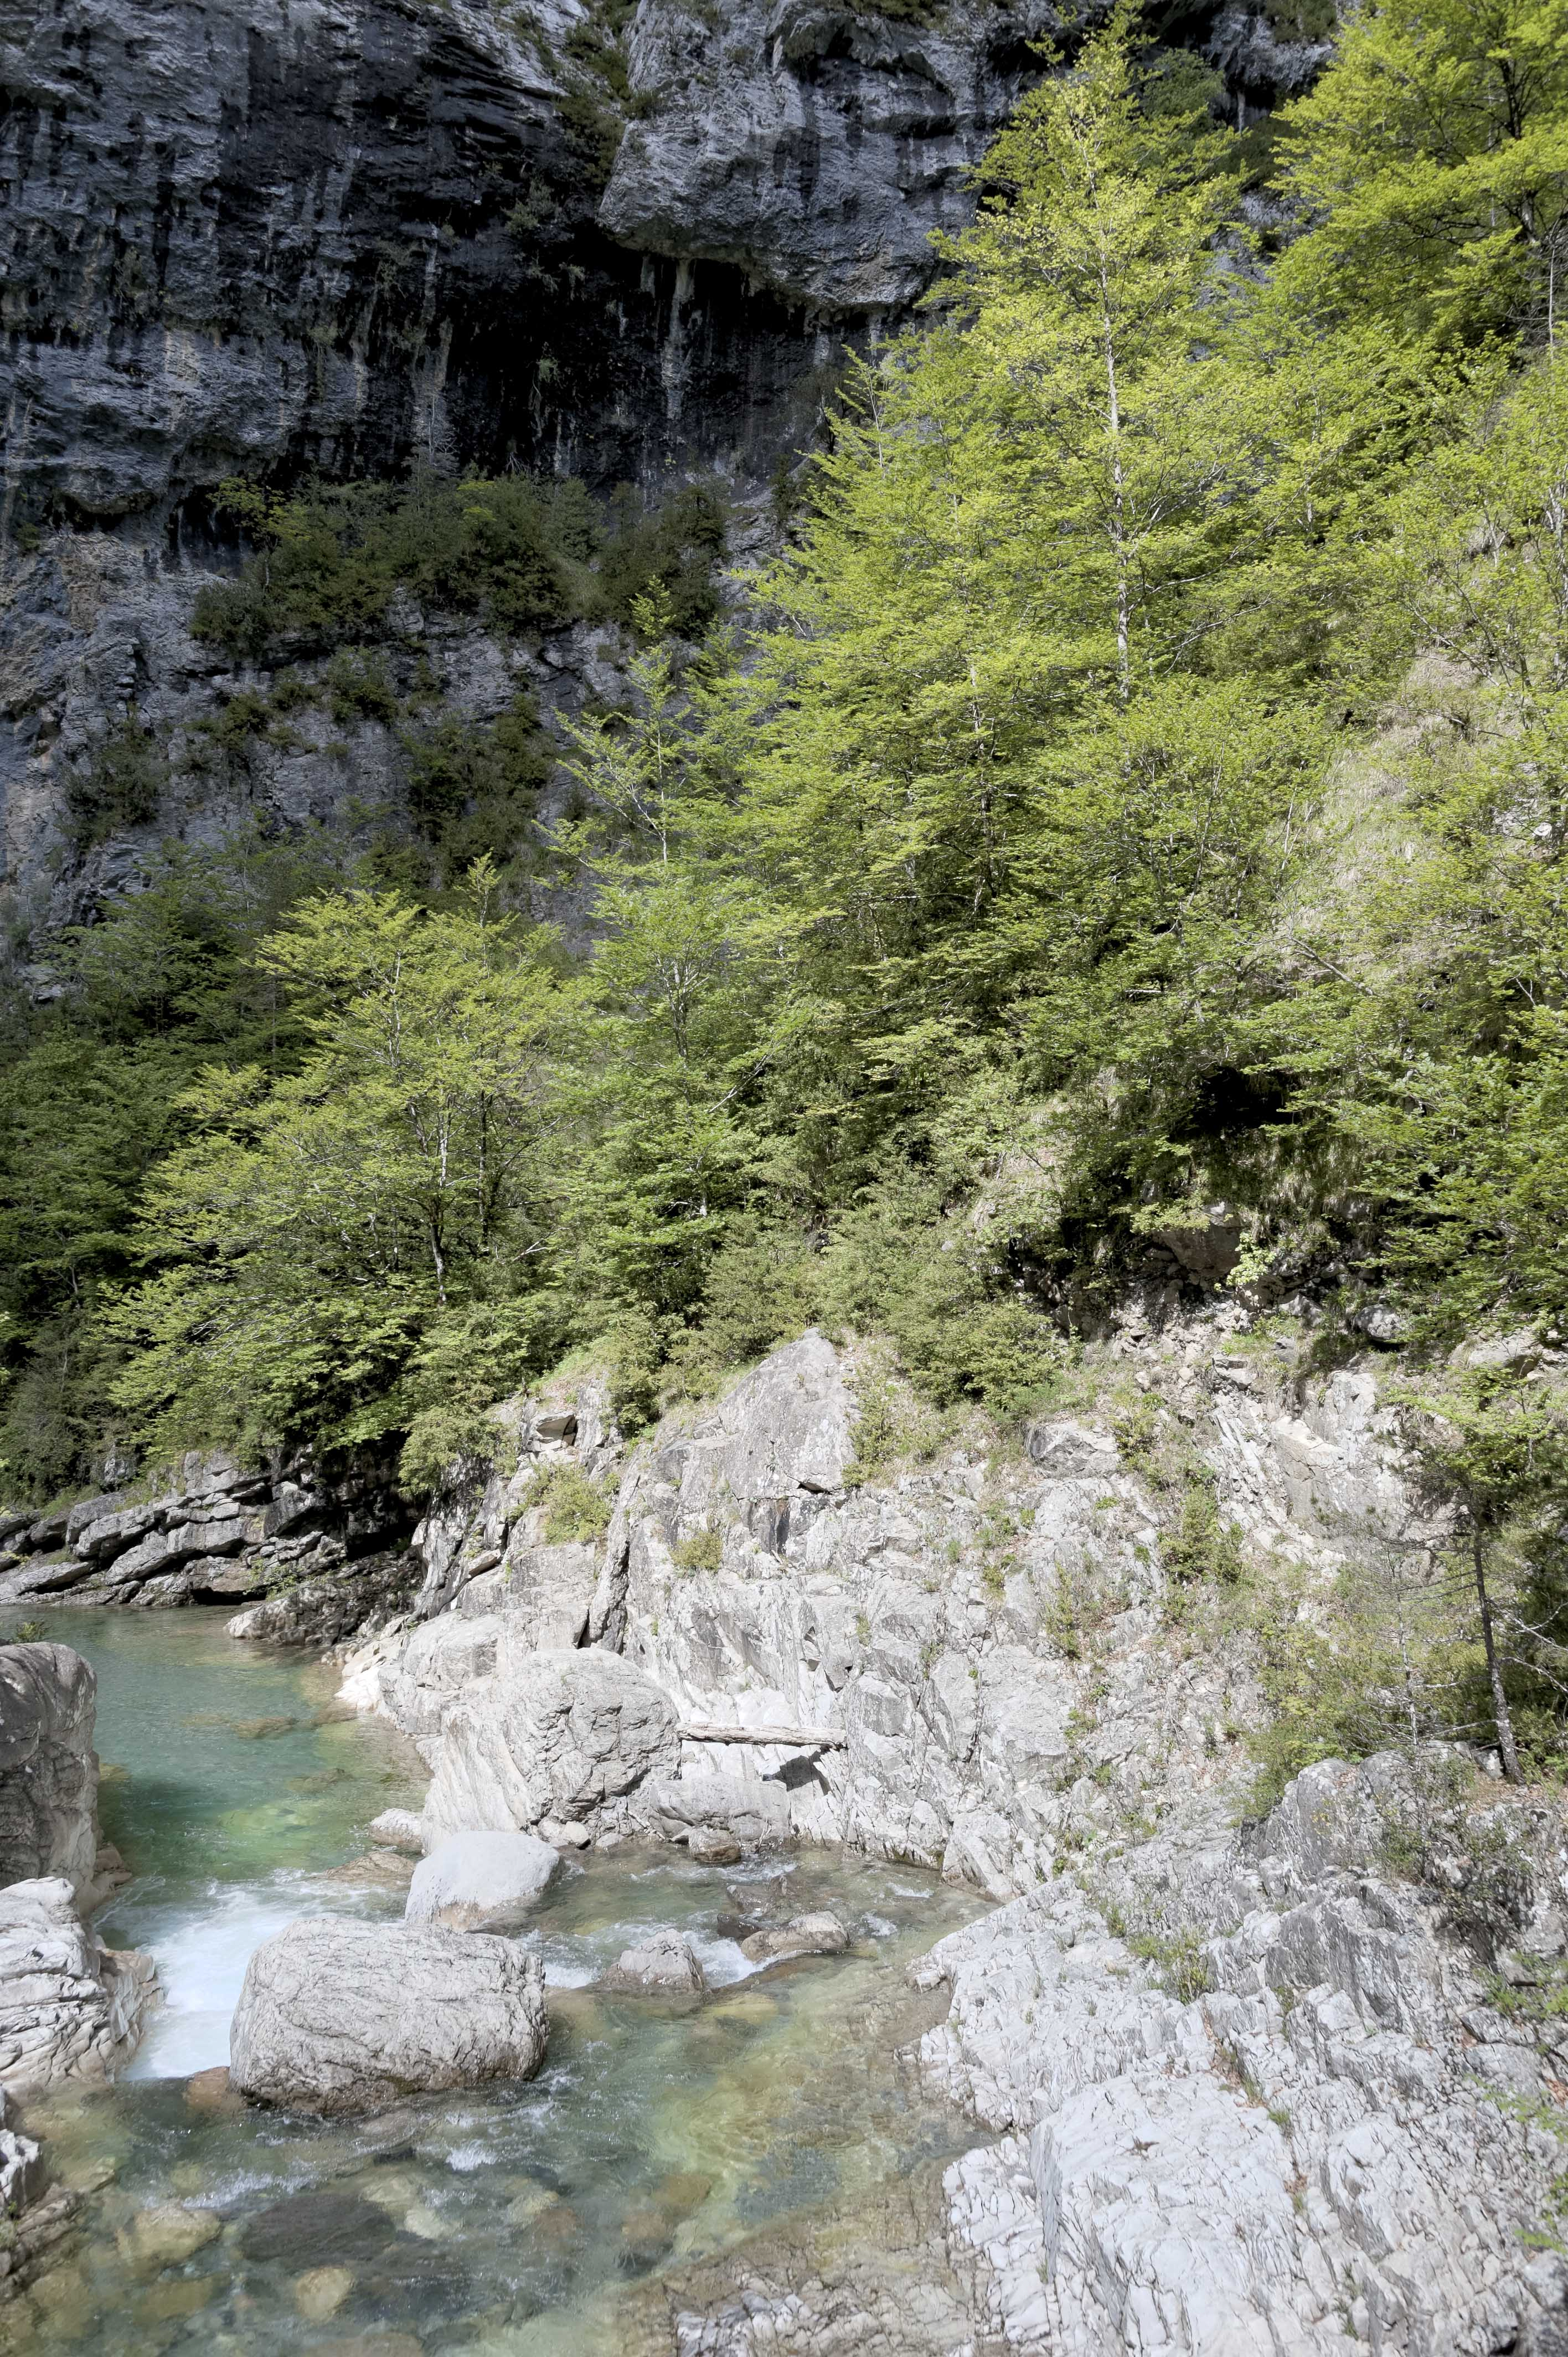 6559_Canyon d'Anisclo (Sobrarbe)